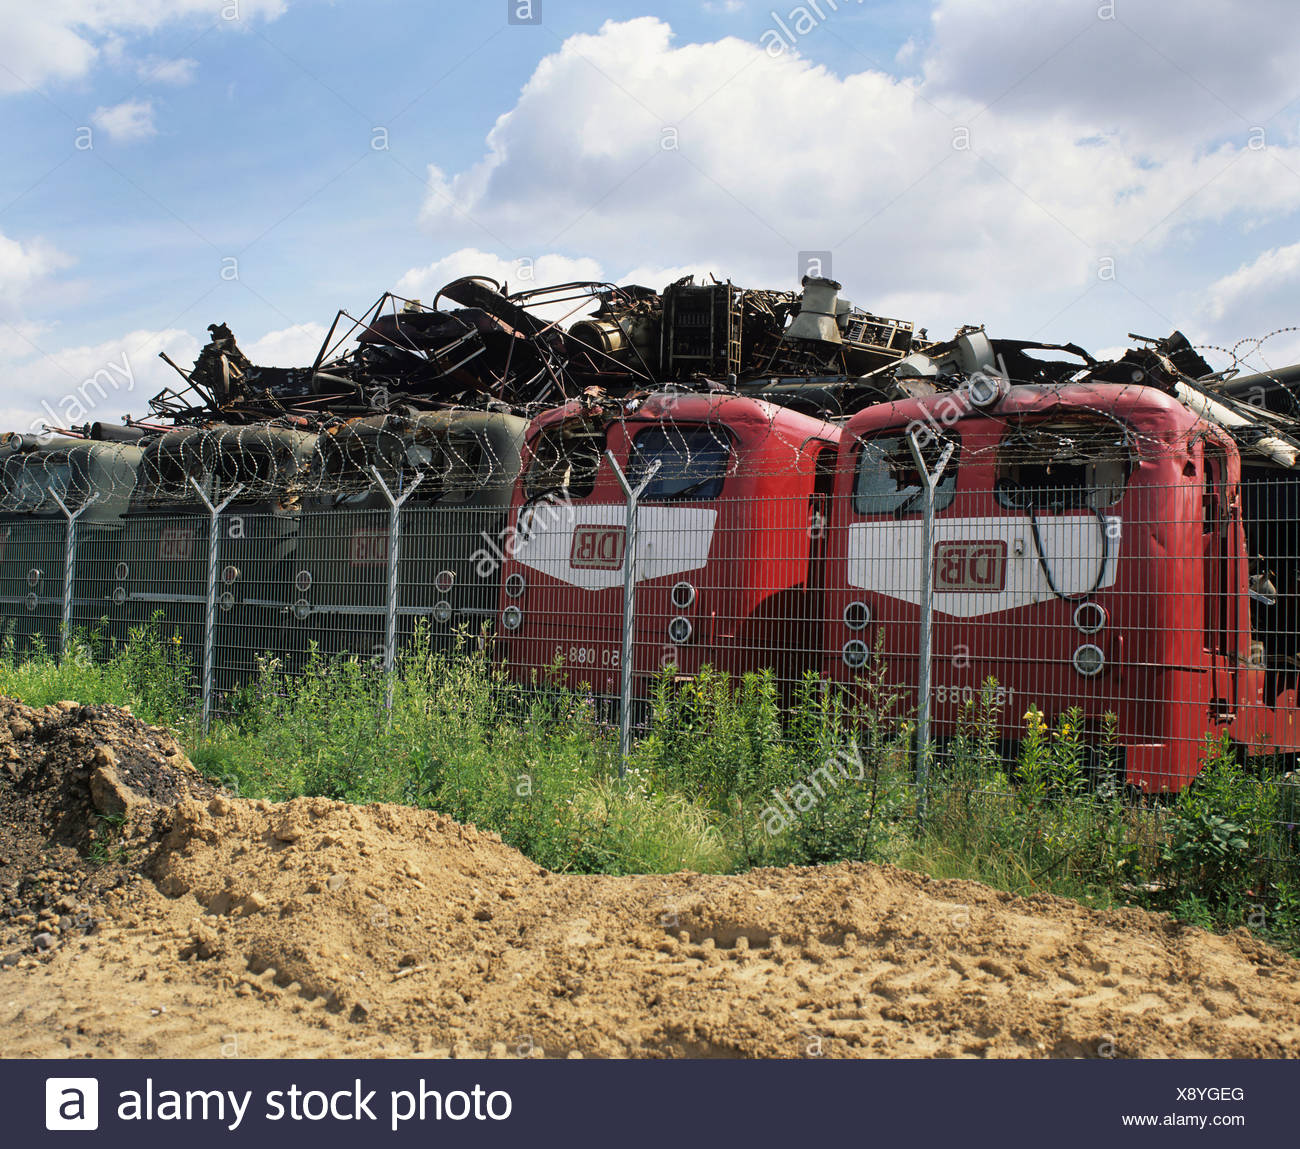 Scrapyard, electric trains and behind them piled-up old metal parts - Stock Image